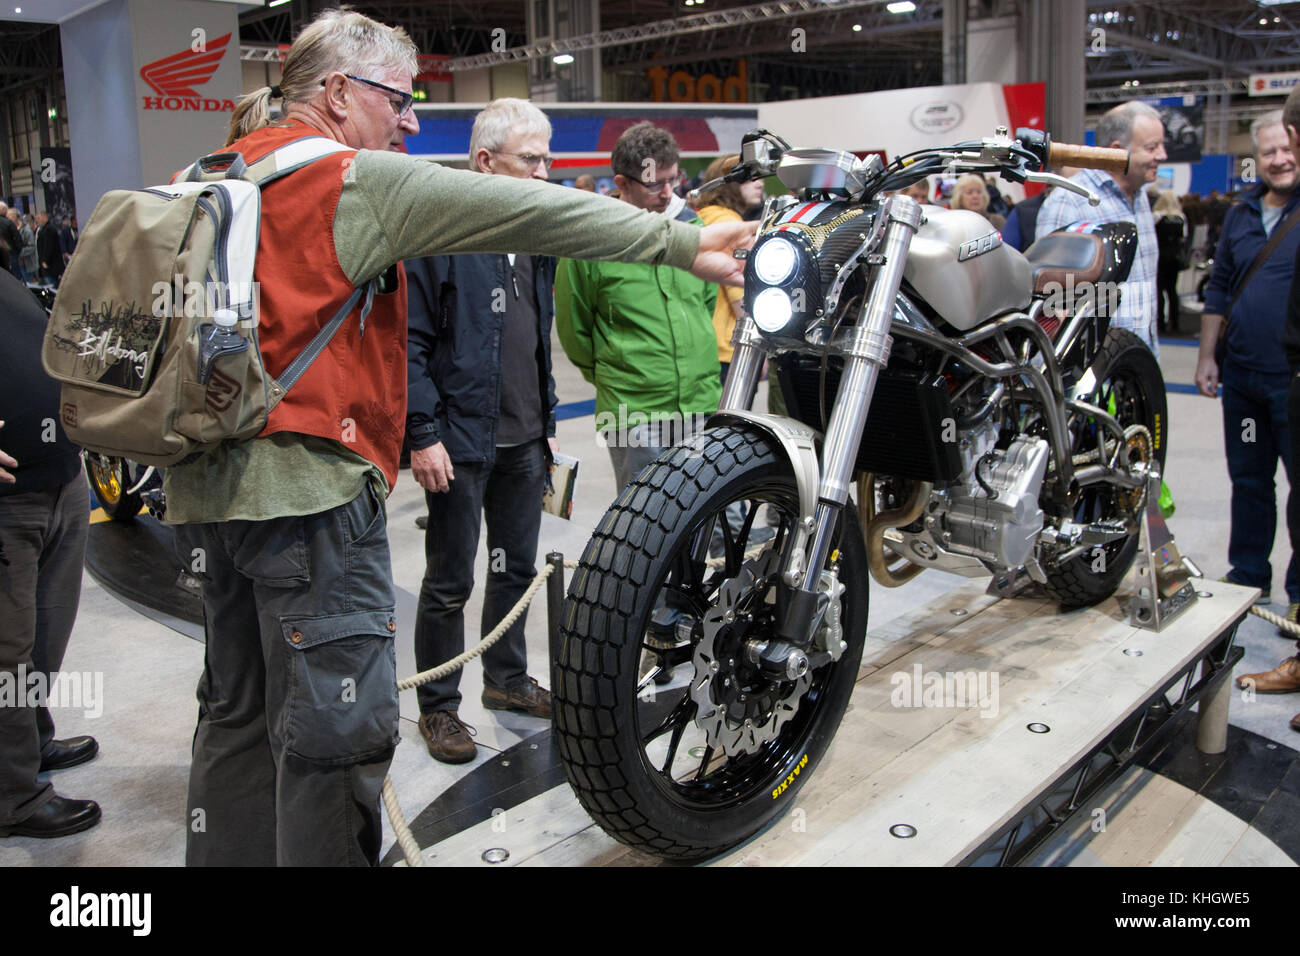 People checking out the brand new CCM Spitfire cafe racer at